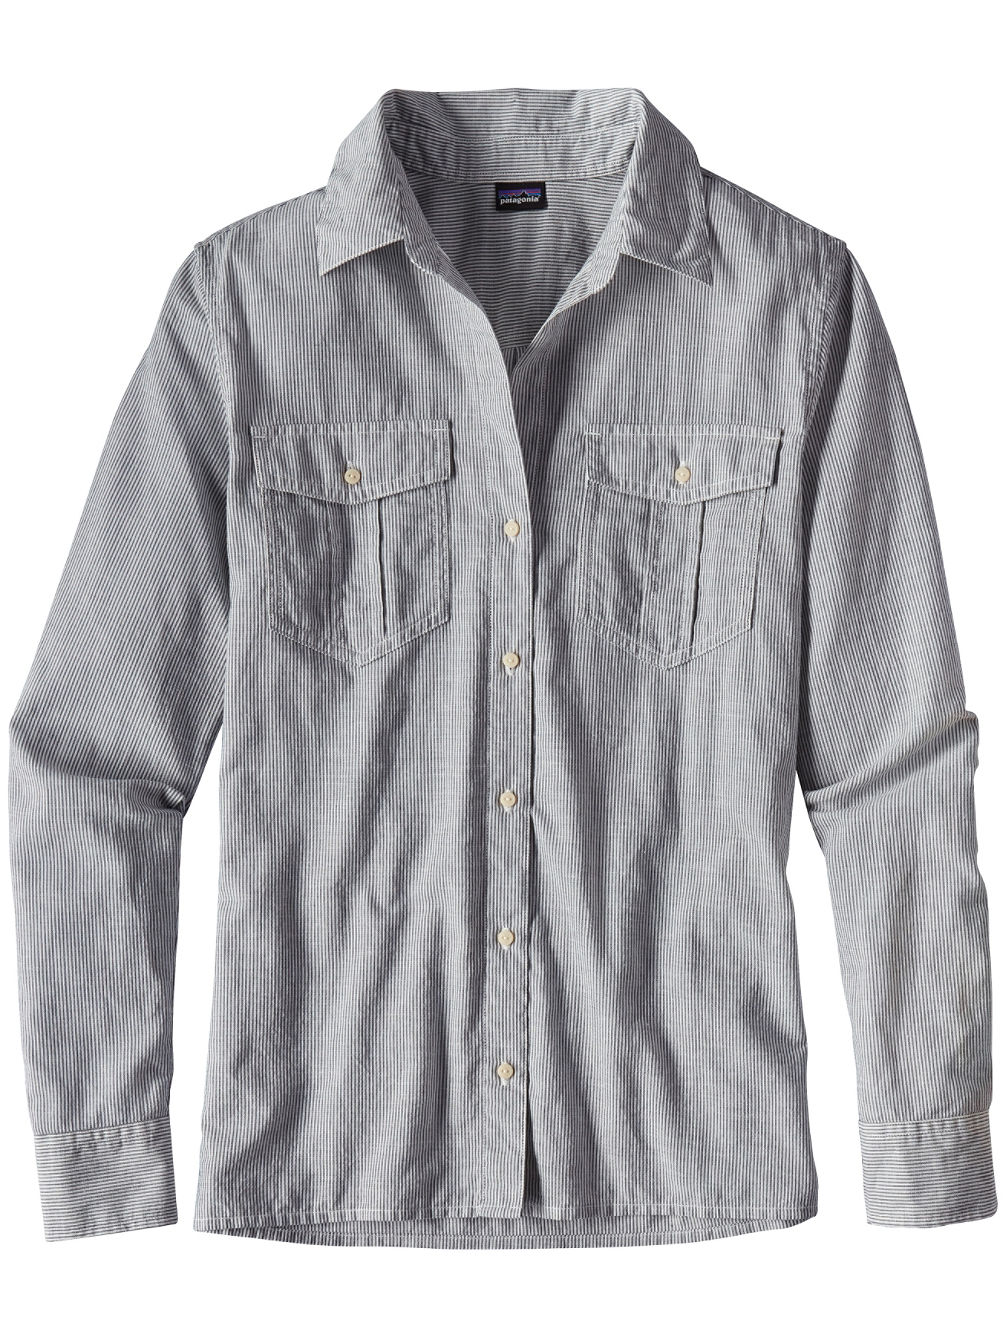 Lw A/C Buttondown Shirt LS